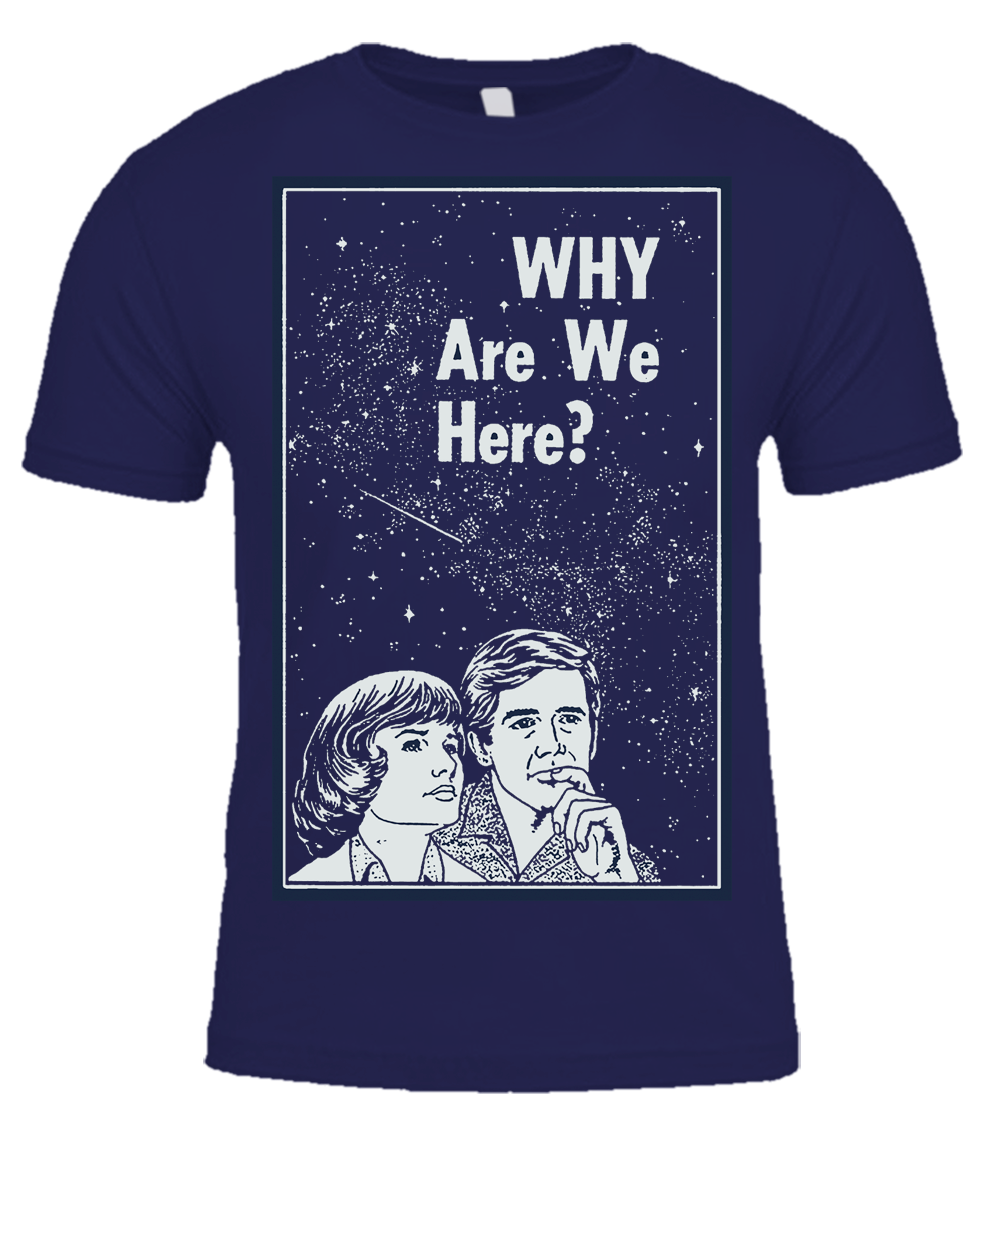 Why are we here? T-Shirt